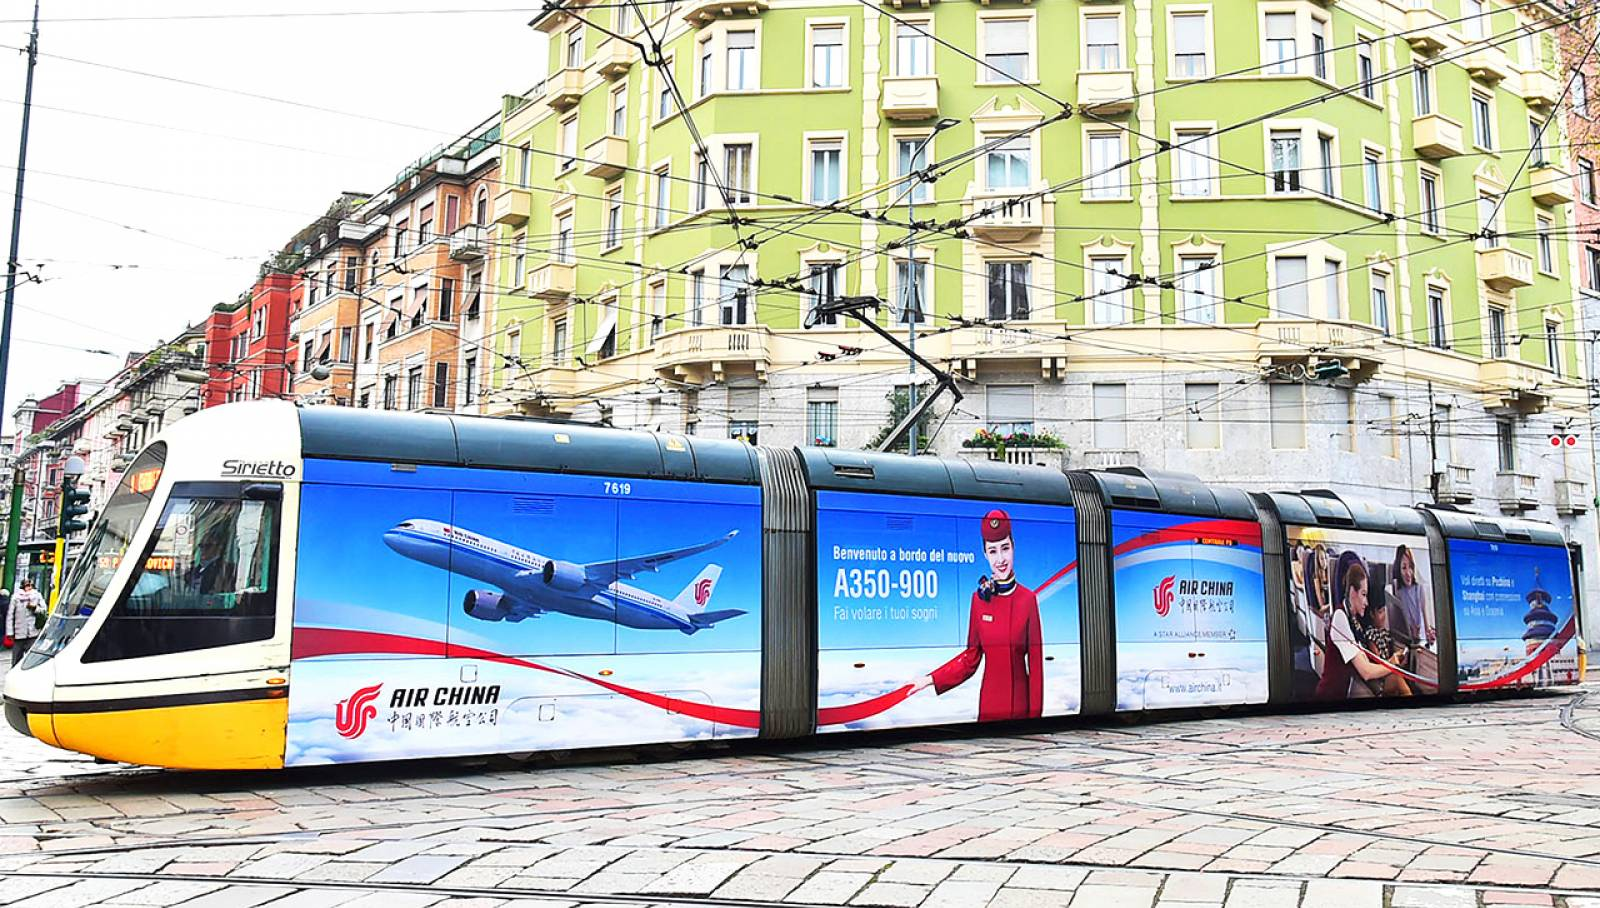 IGPDecaux Milan Wrapped vehicles for Air China